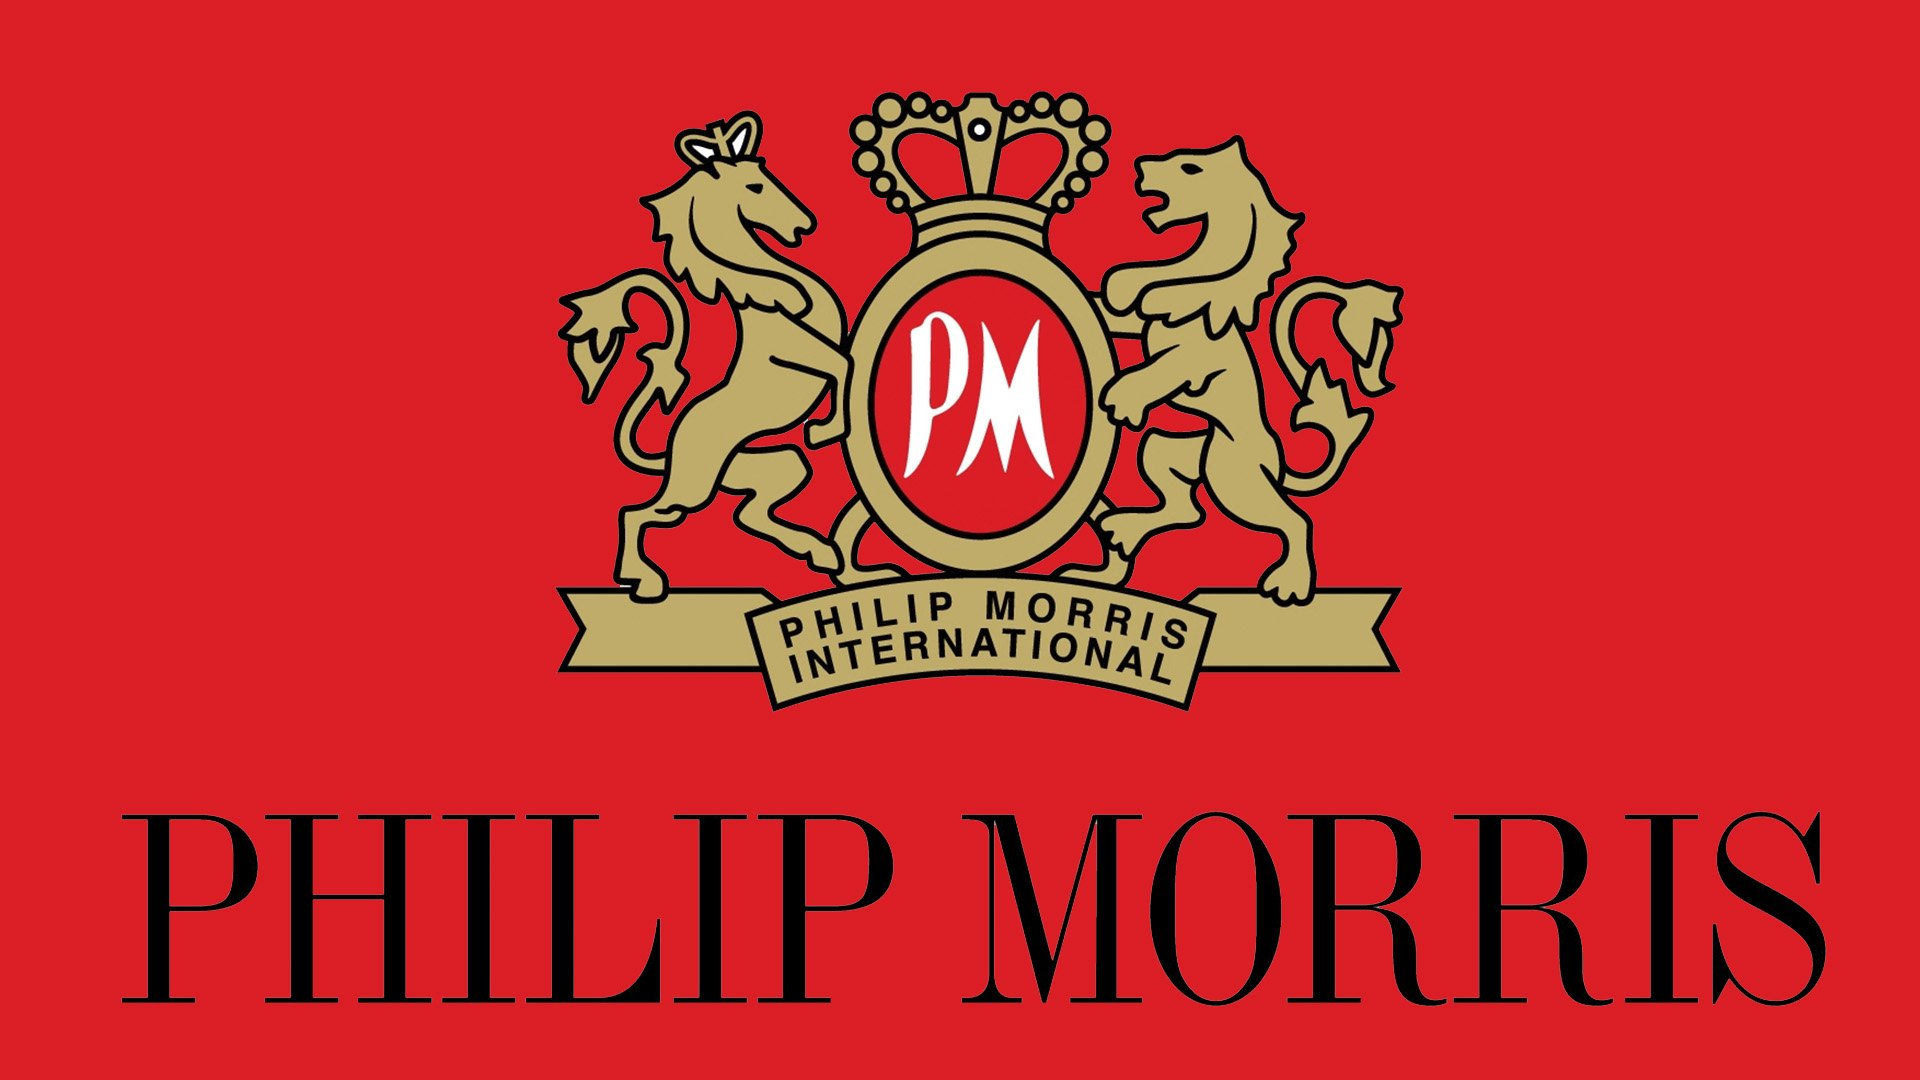 Philip Morris Logo Symbol Meaning History And Evolution